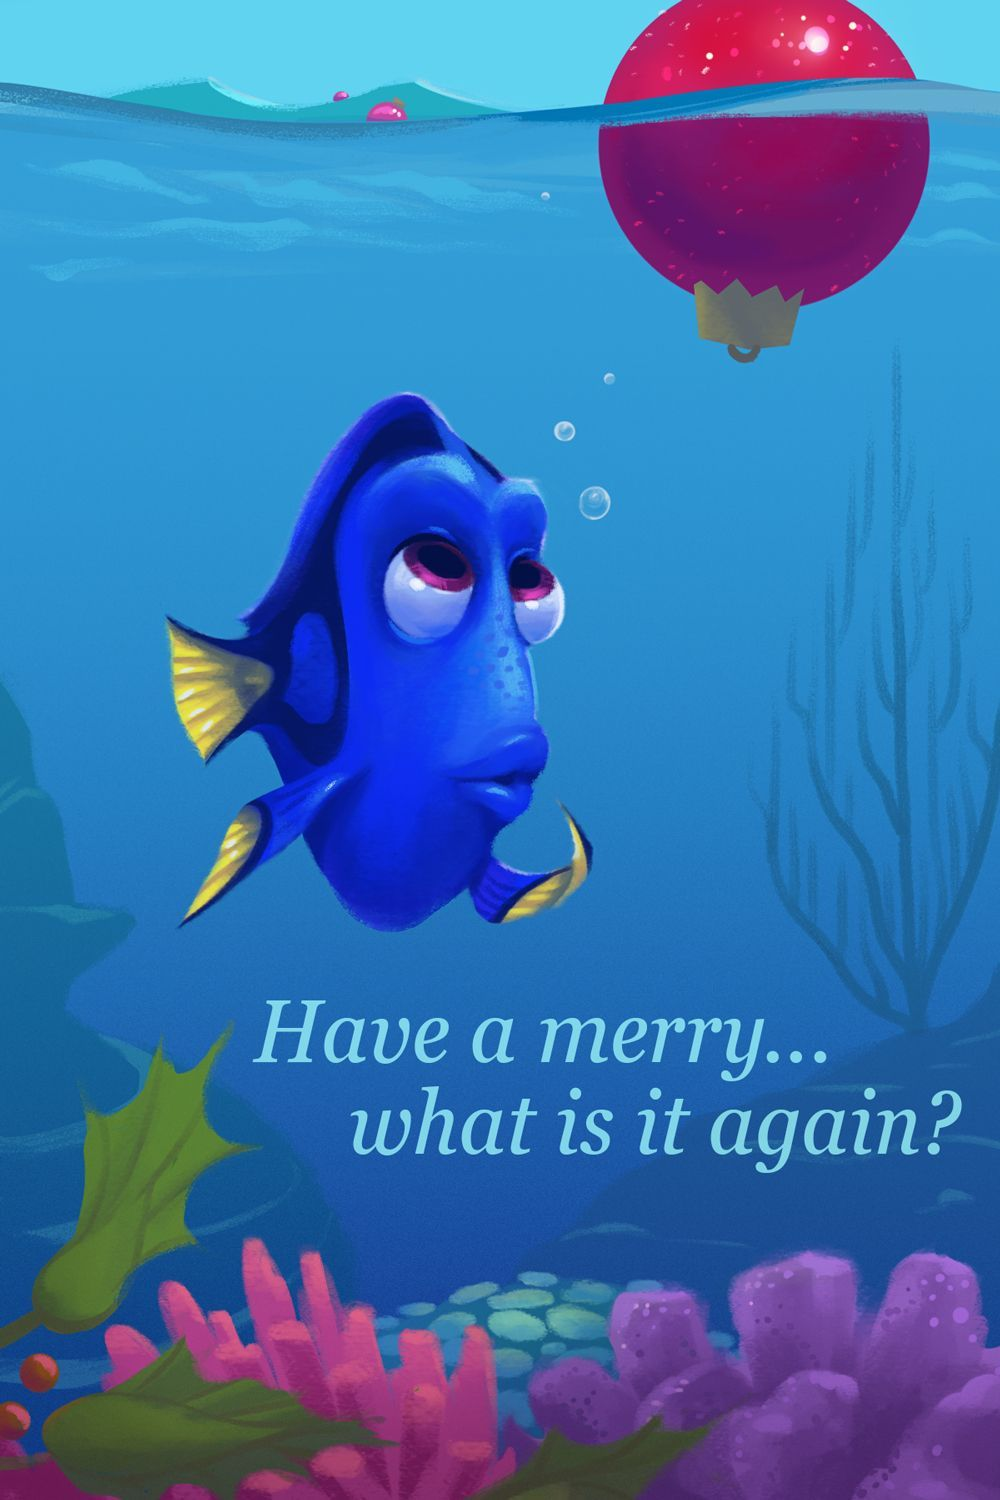 Dory Quotes 30 Inspiring Yearbook Quotes For Graduating Seniors  Grad 2K16